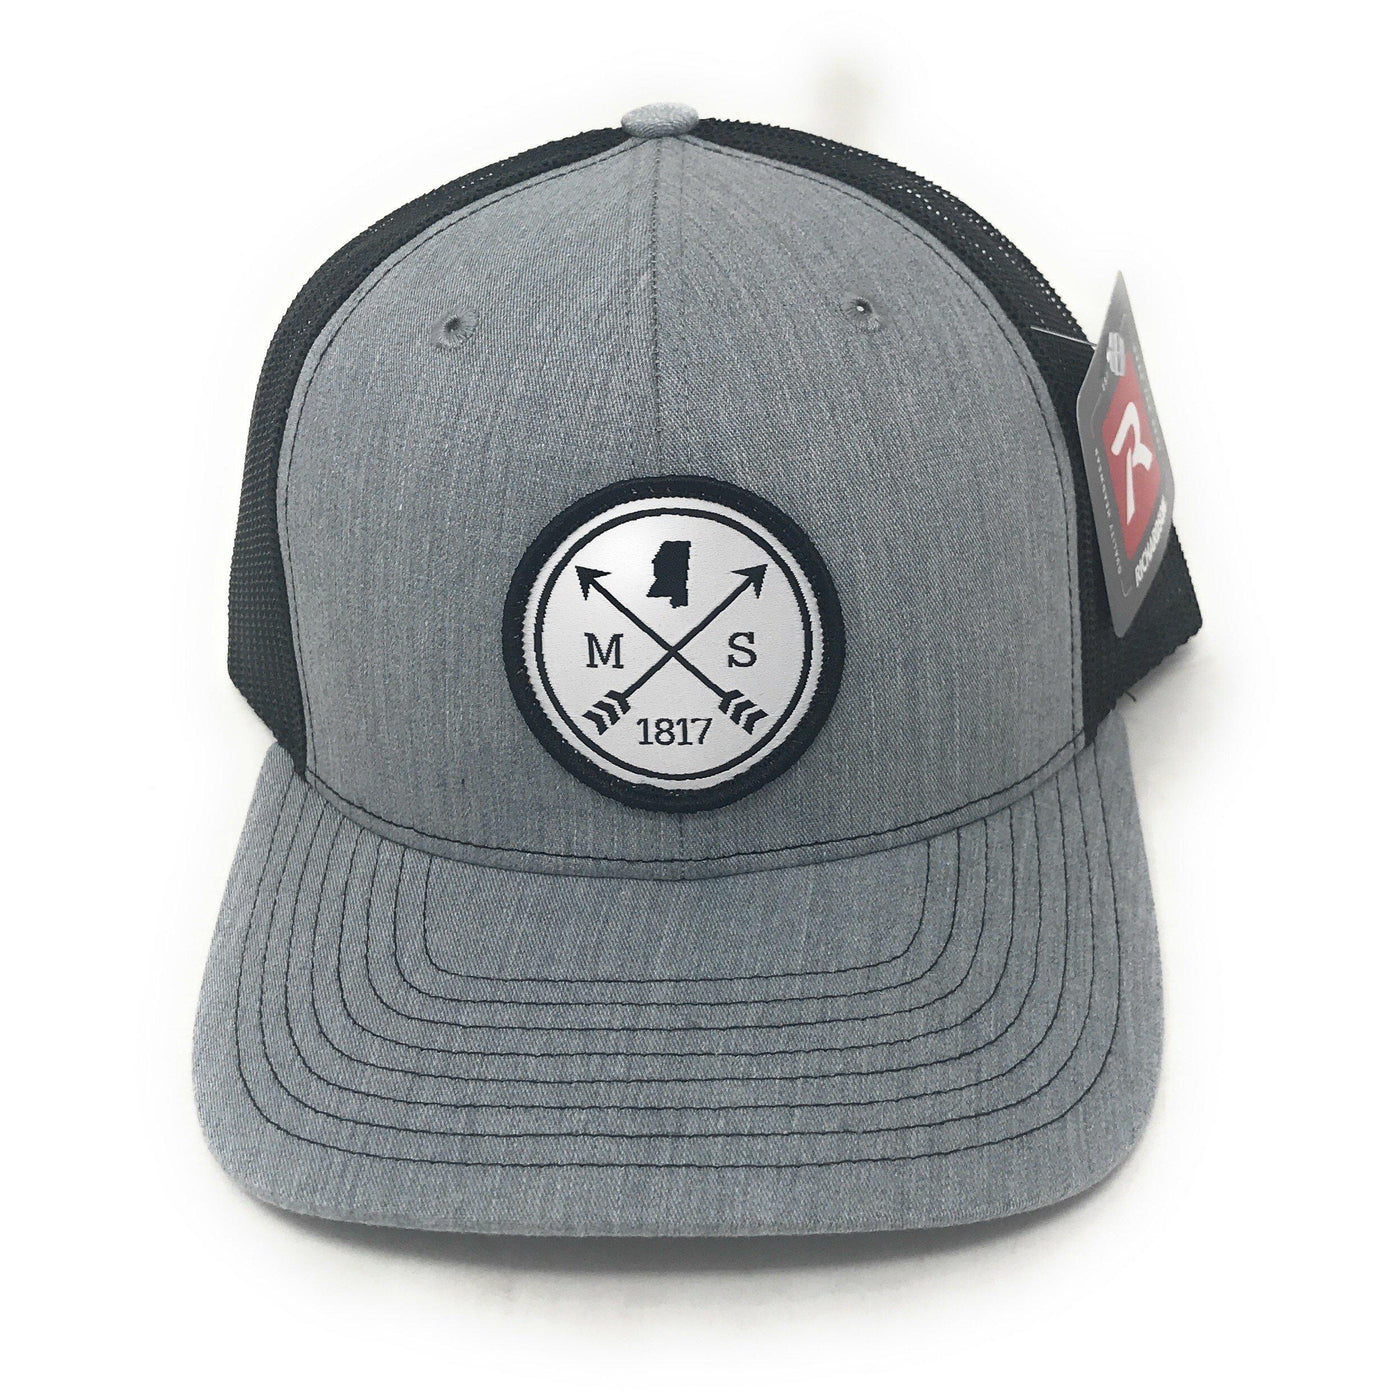 ed901b826d7a5 MS Woven Patch Mesh Trucker Hat – GrivetOutdoors.com